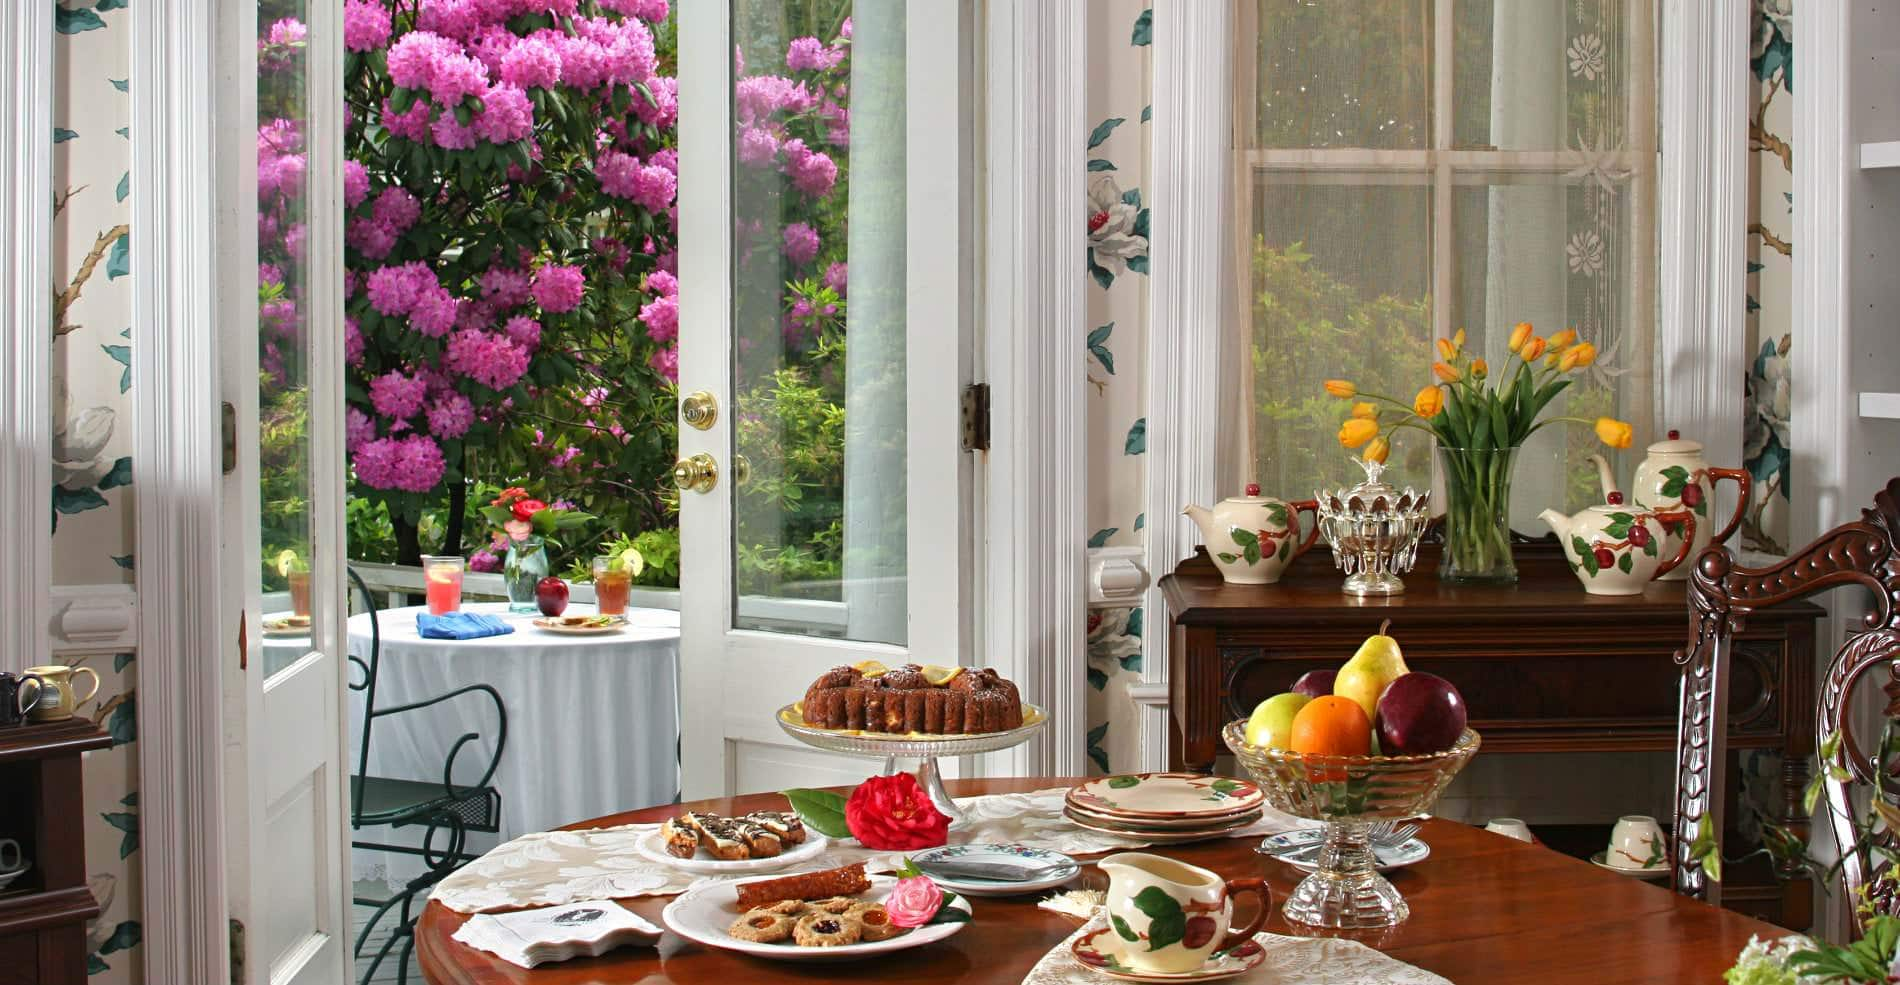 Table of colorful breakfast dishes on white plates with pink flowers outside open French doors